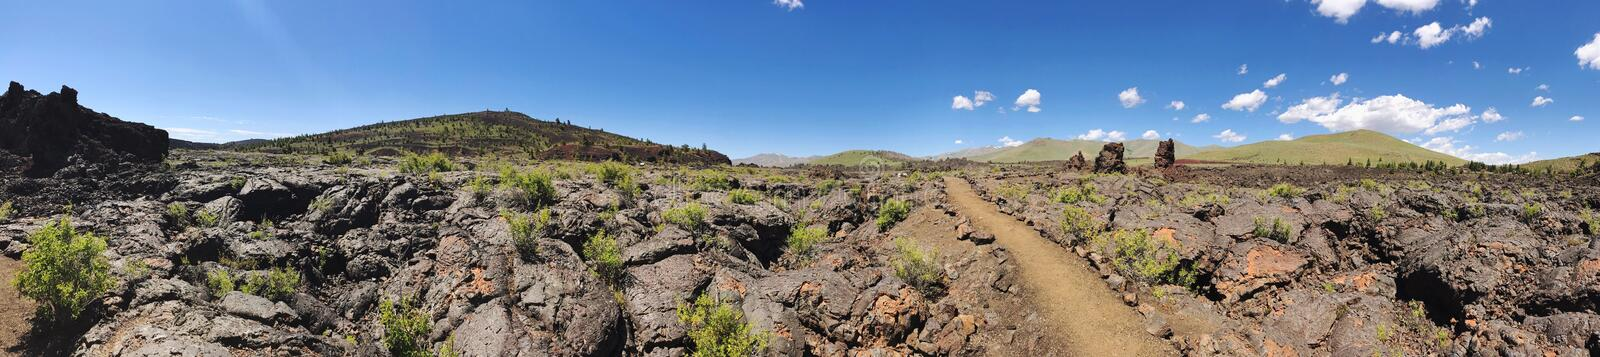 Panorama of Craters of the Moon National Monument royalty free stock photos